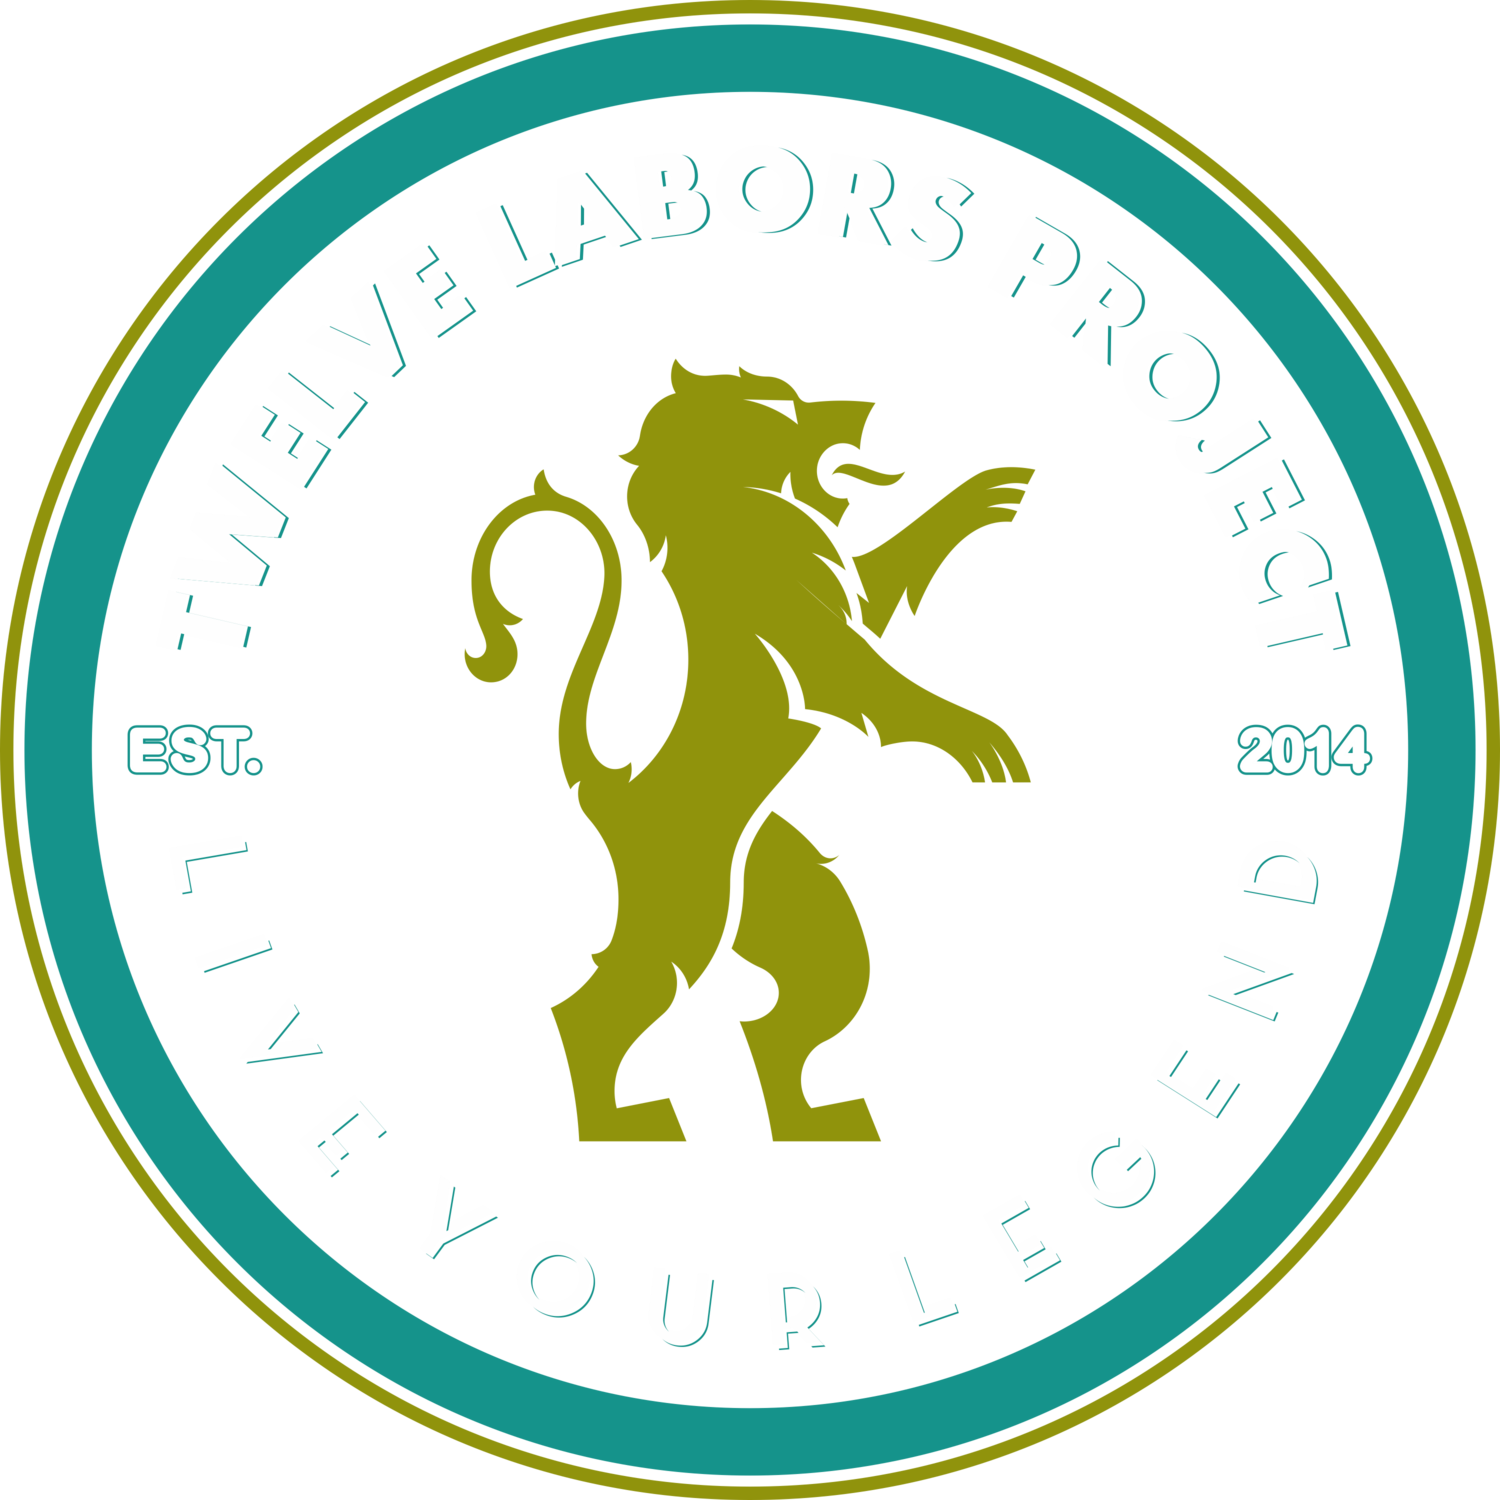 Twelve Labors Project